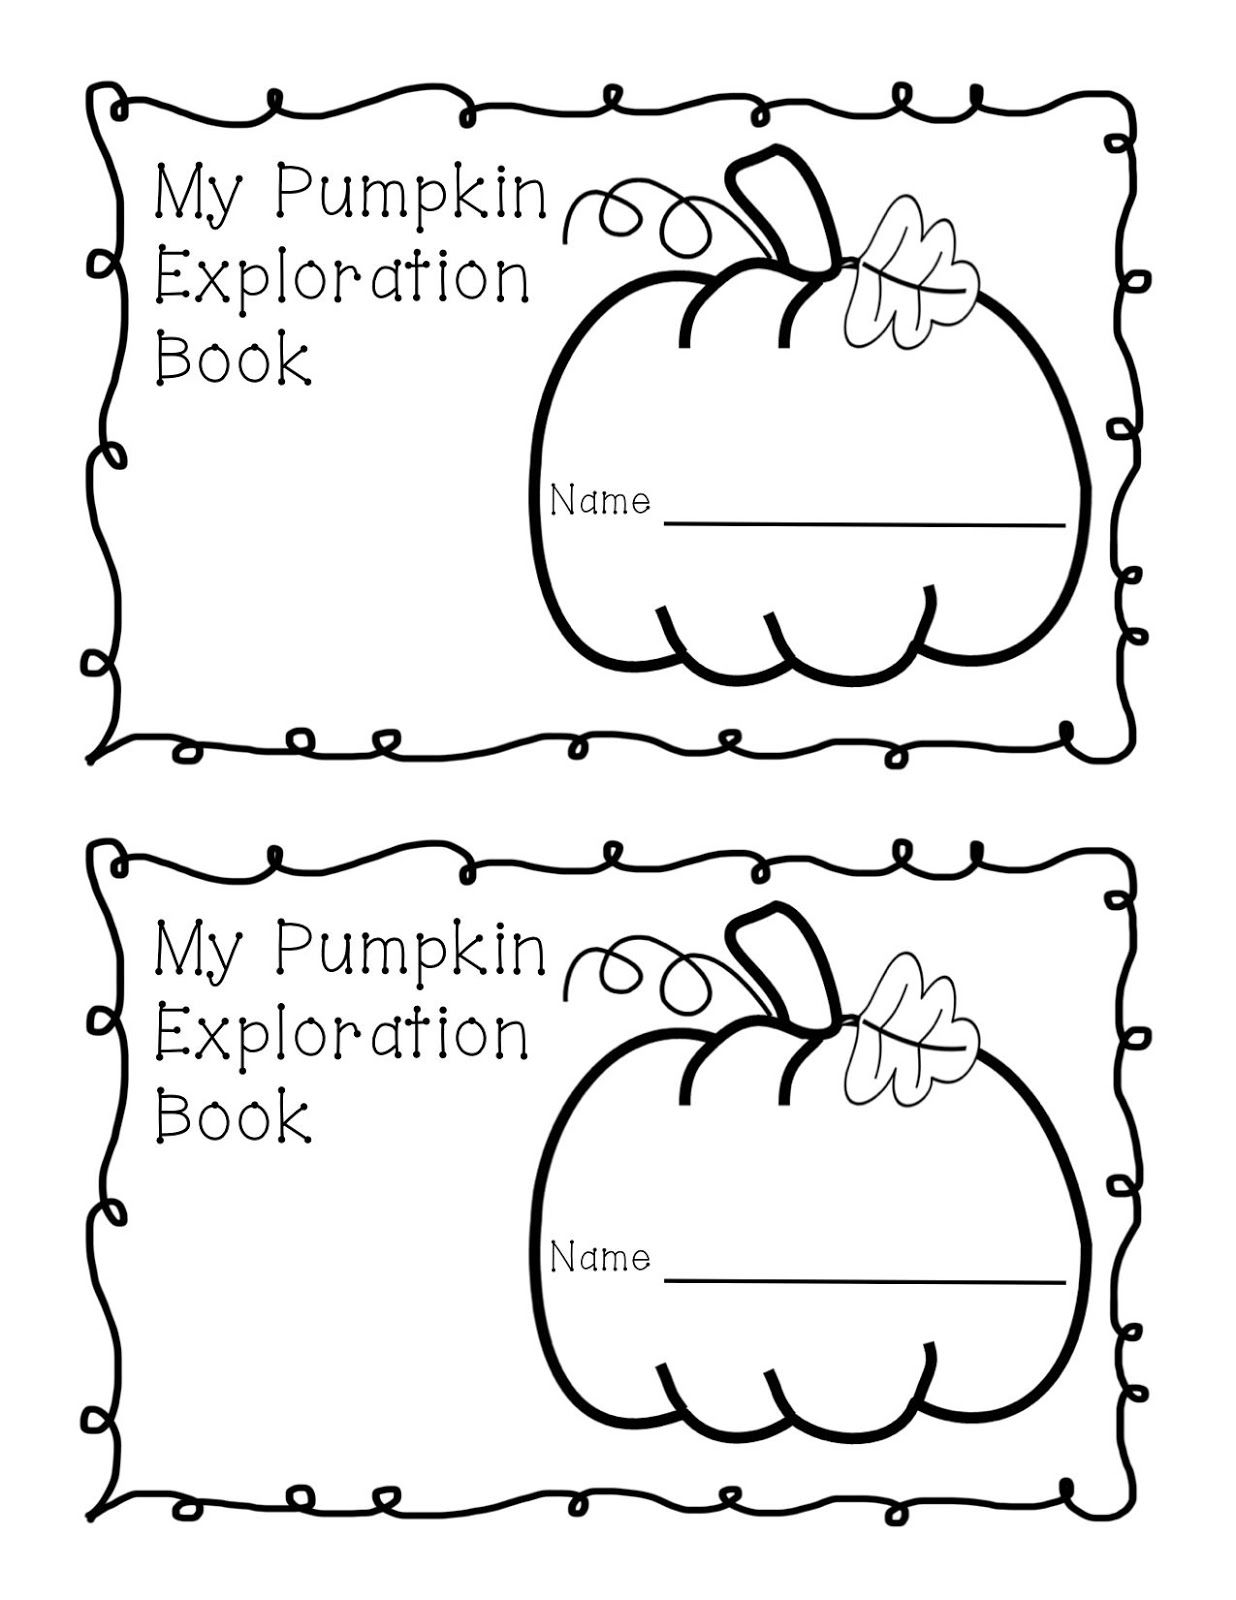 Pumpkin Exploration Book Freebie for kids to explore and